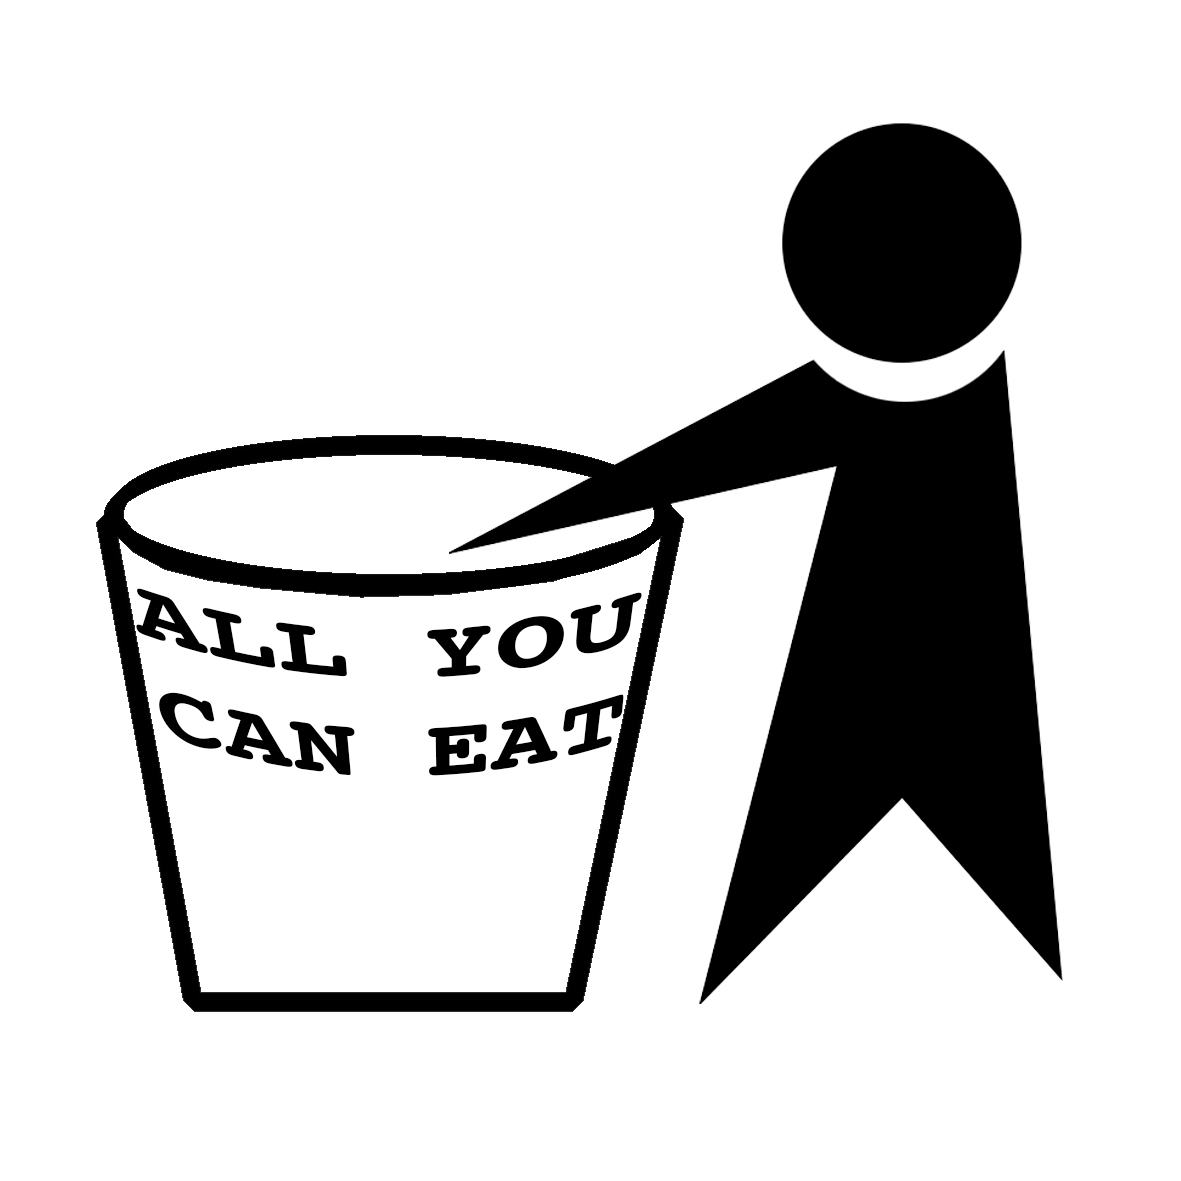 ALL YOU CAN EAT STICKER